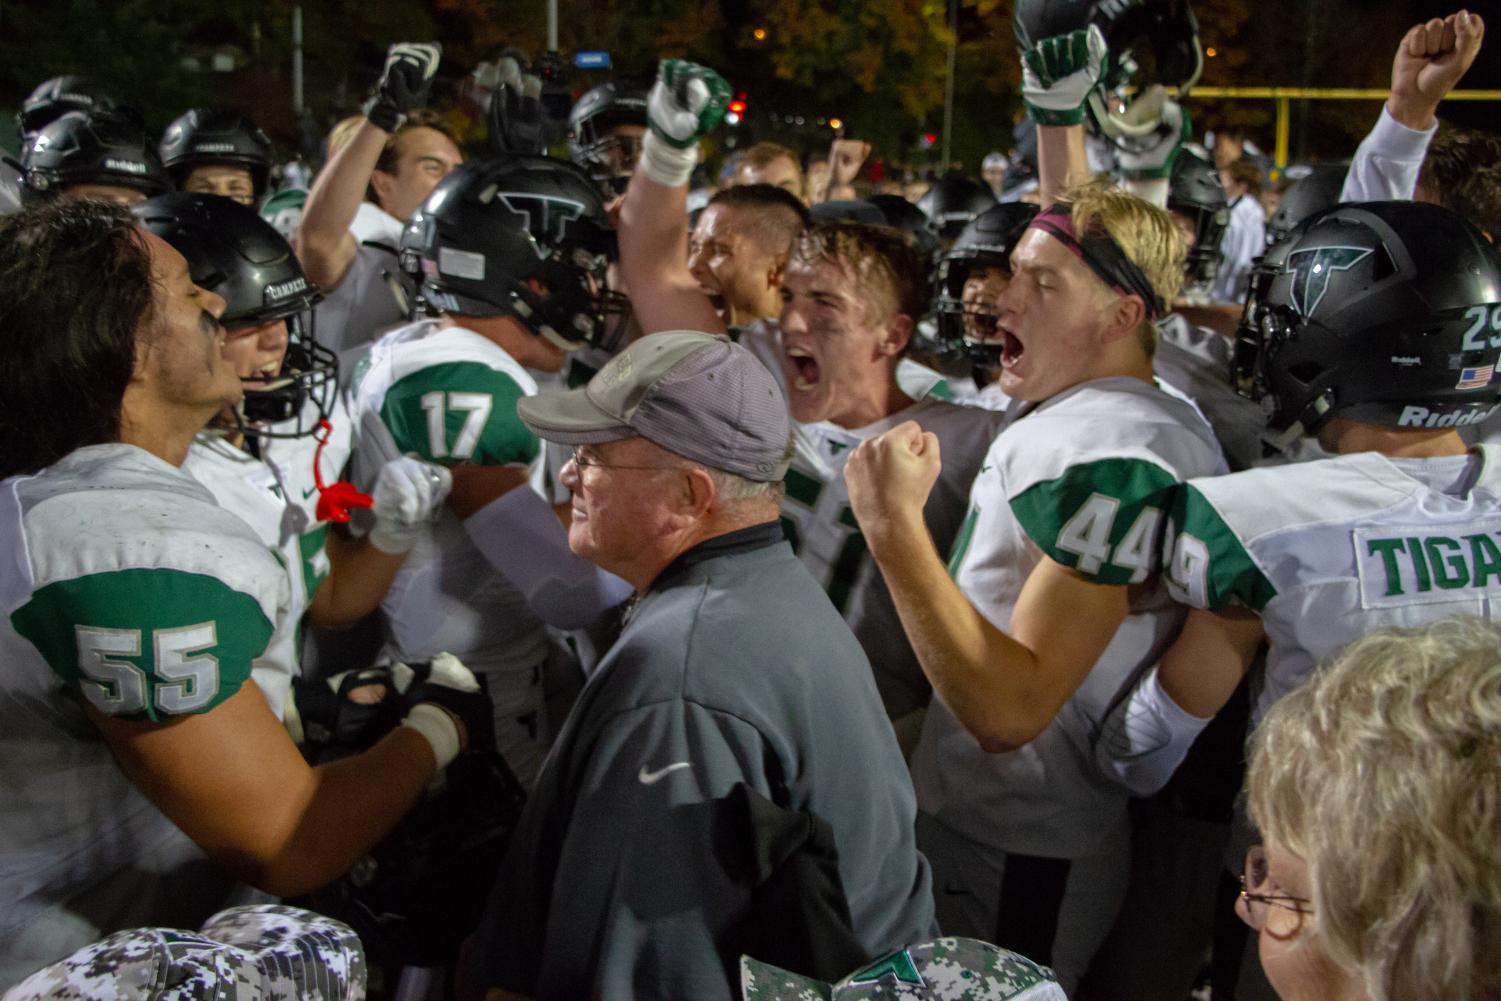 Players surround Coach Ruecker to celebrate their victory over West Linn. Ruecker, who has been a head coach for 42 years, 10 at Tigard, announced his retirement this week.